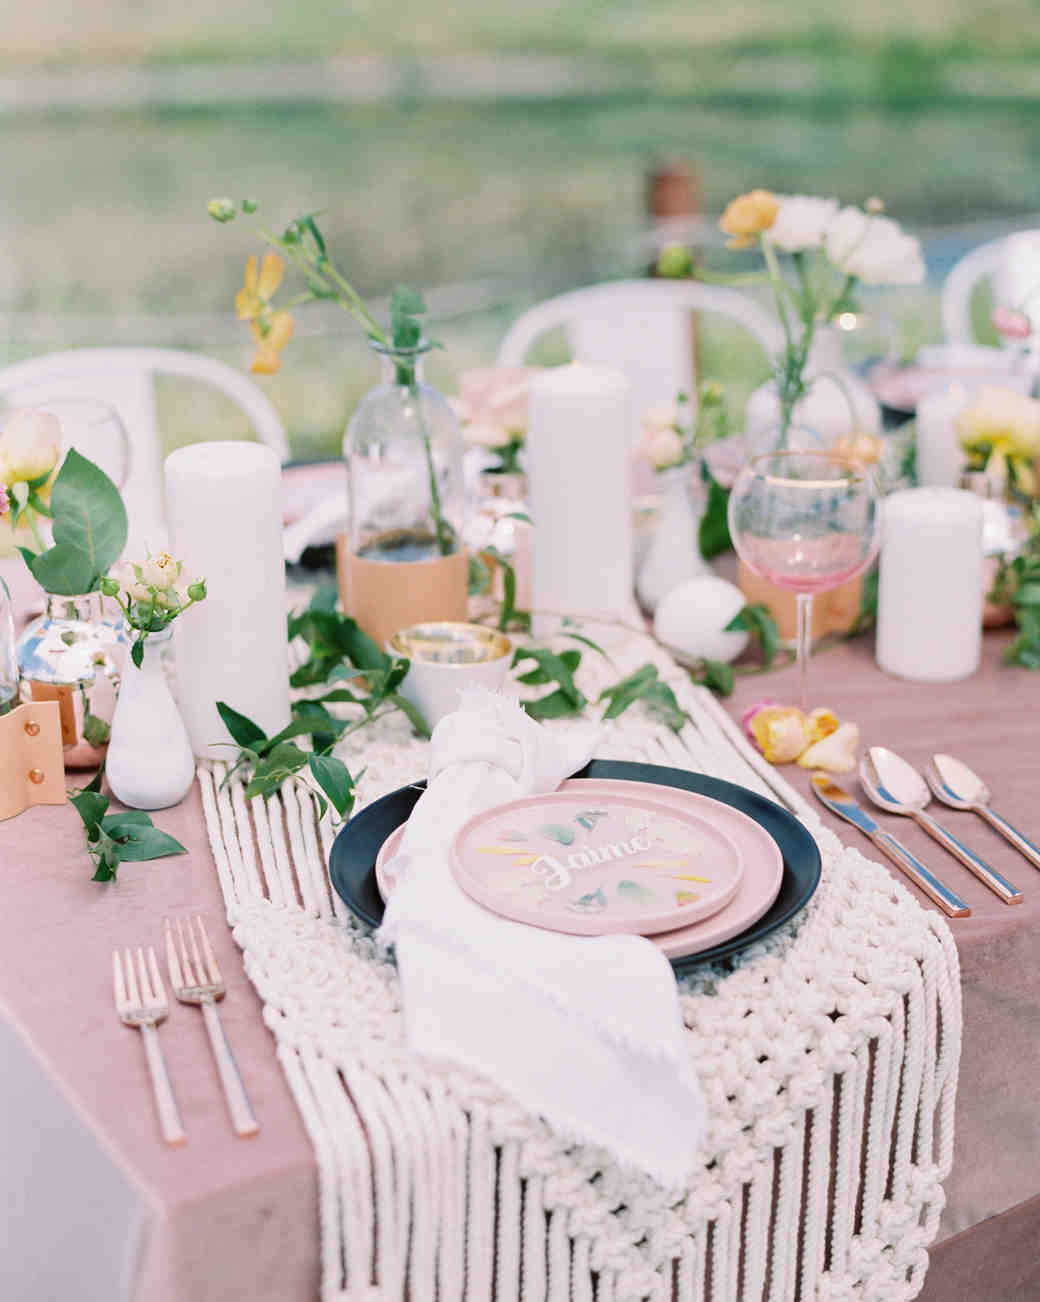 Cluster Centerpieces in Clear Vases on Boho Table